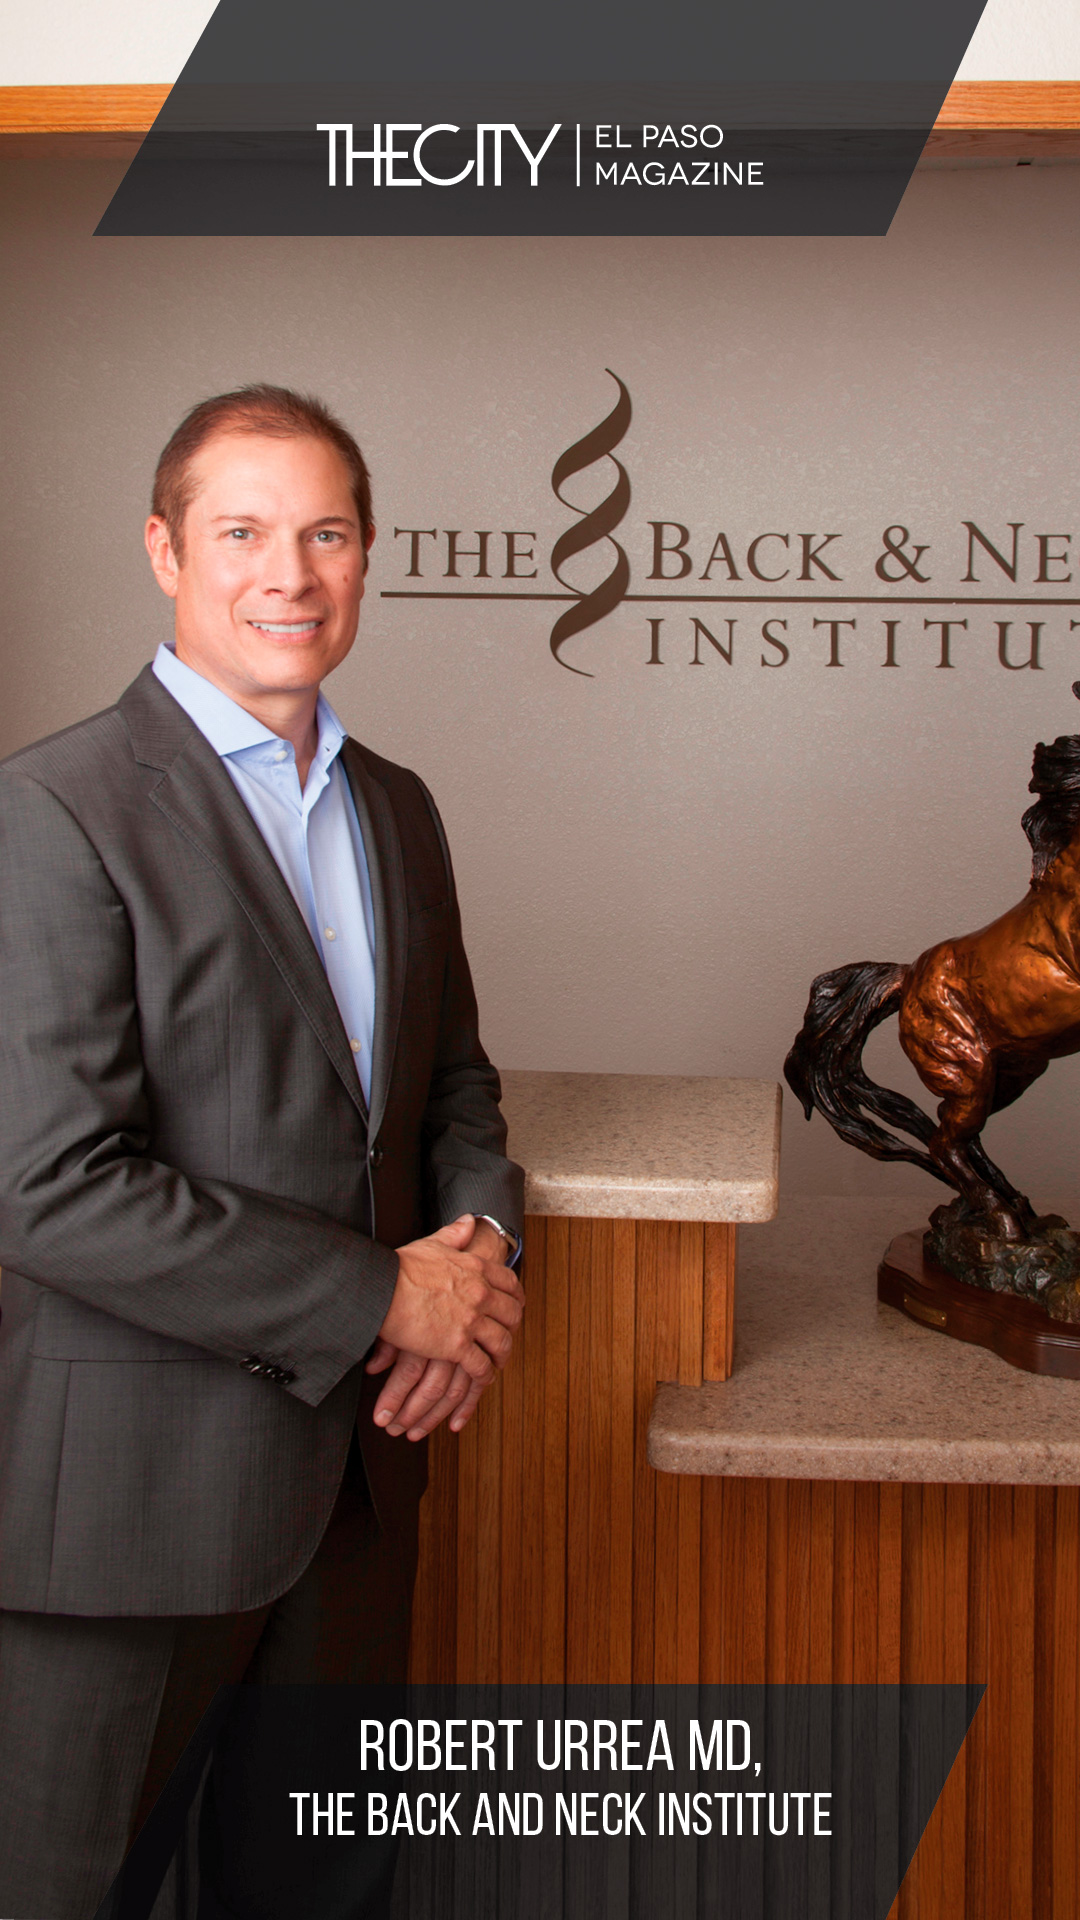 Healthcare Professionals:  Robert Urrea, md The Back and neck institute